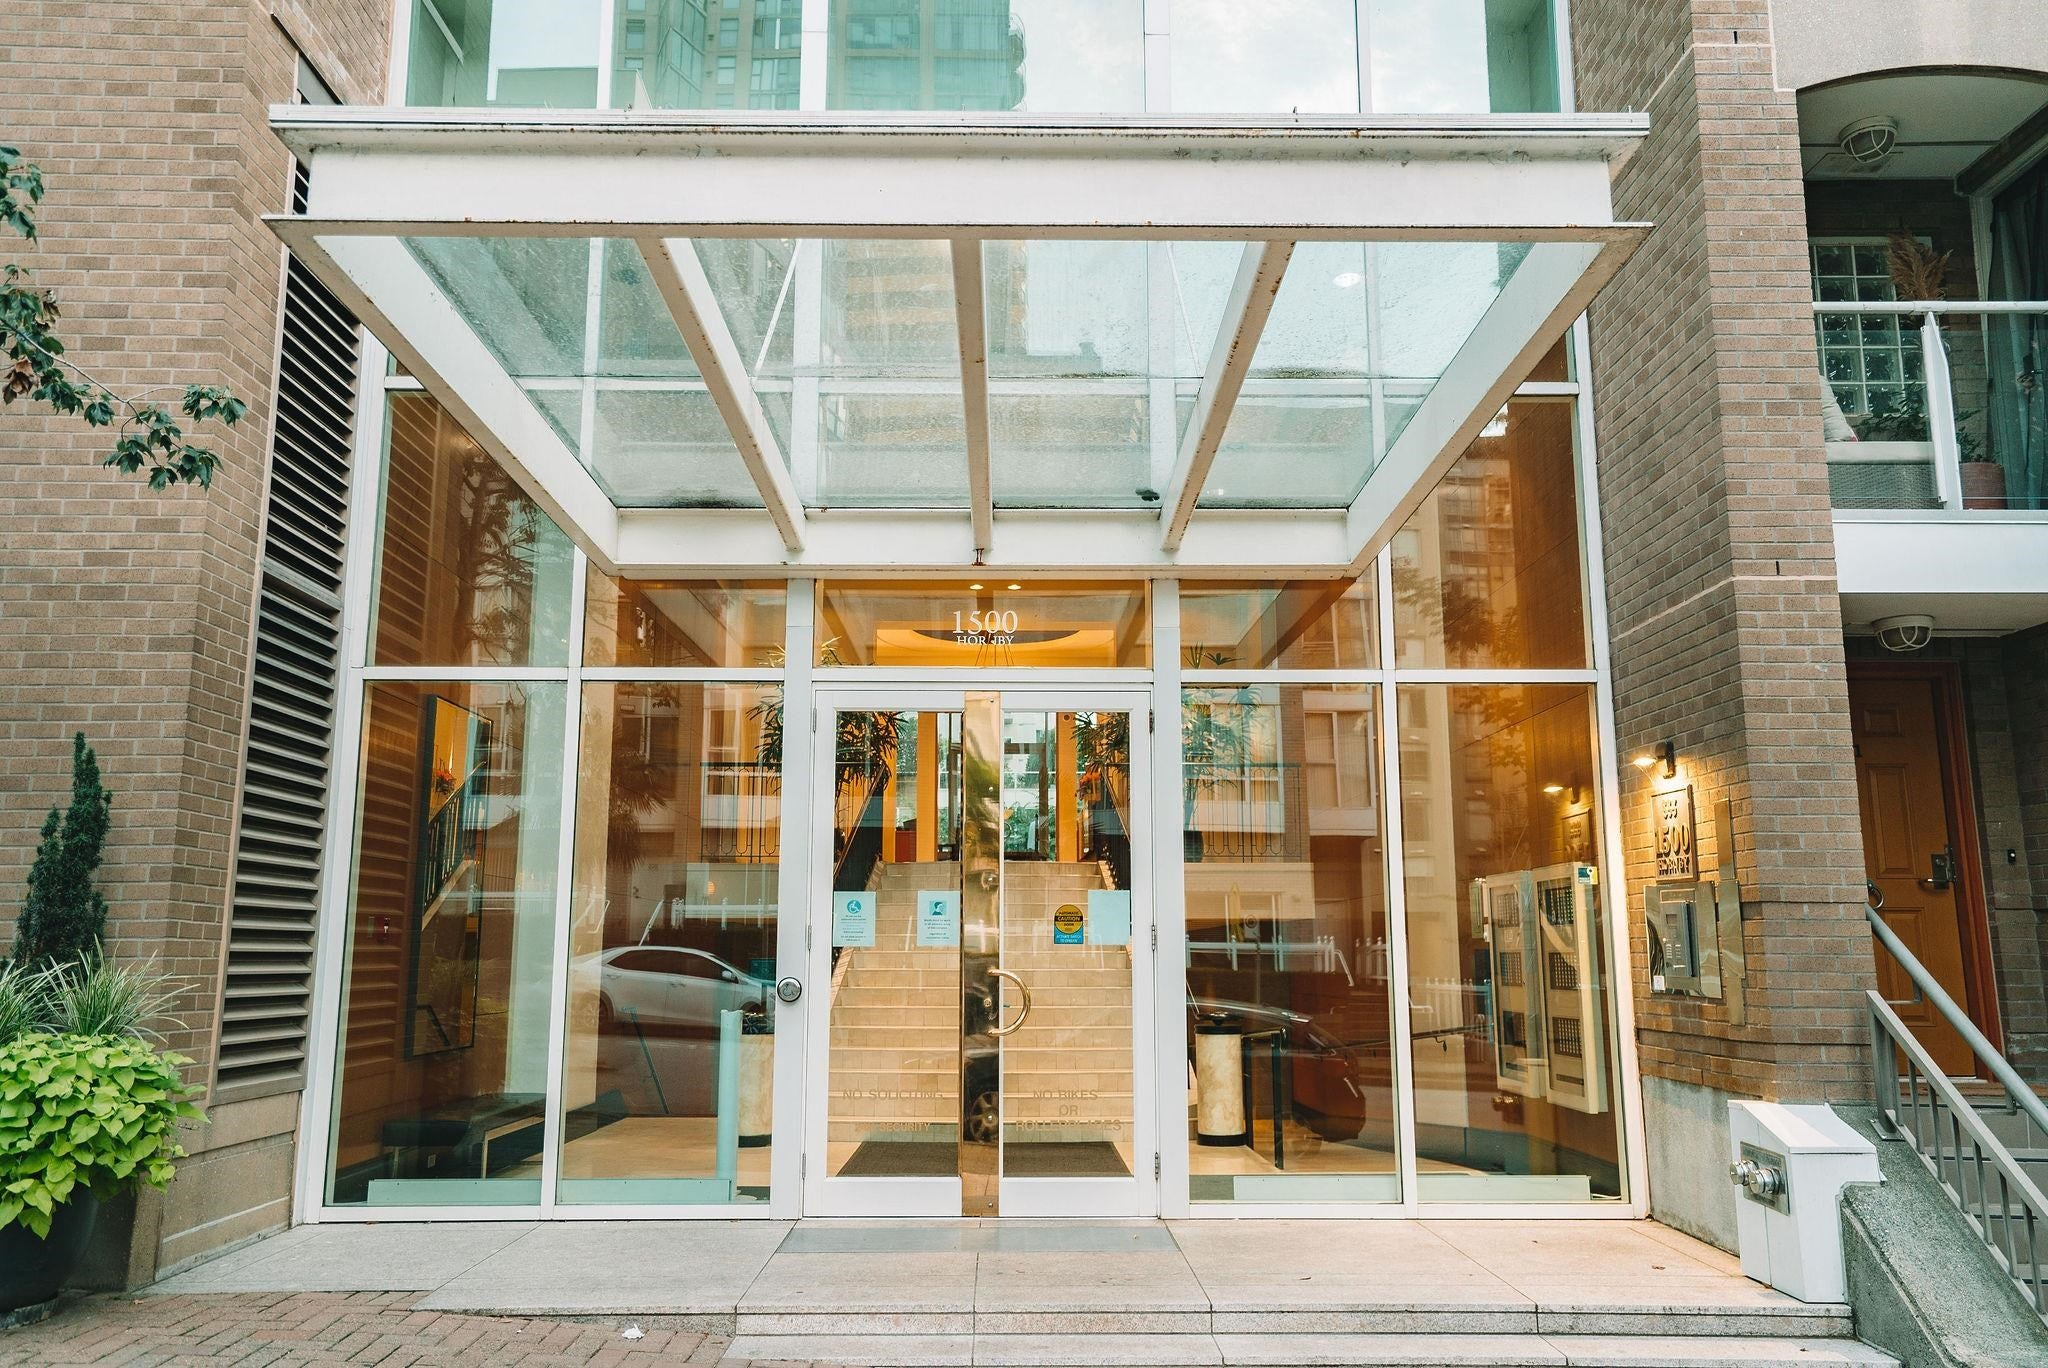 1009 1500 HORNBY STREET - Yaletown Apartment/Condo for sale, 2 Bedrooms (R2617441) - #4